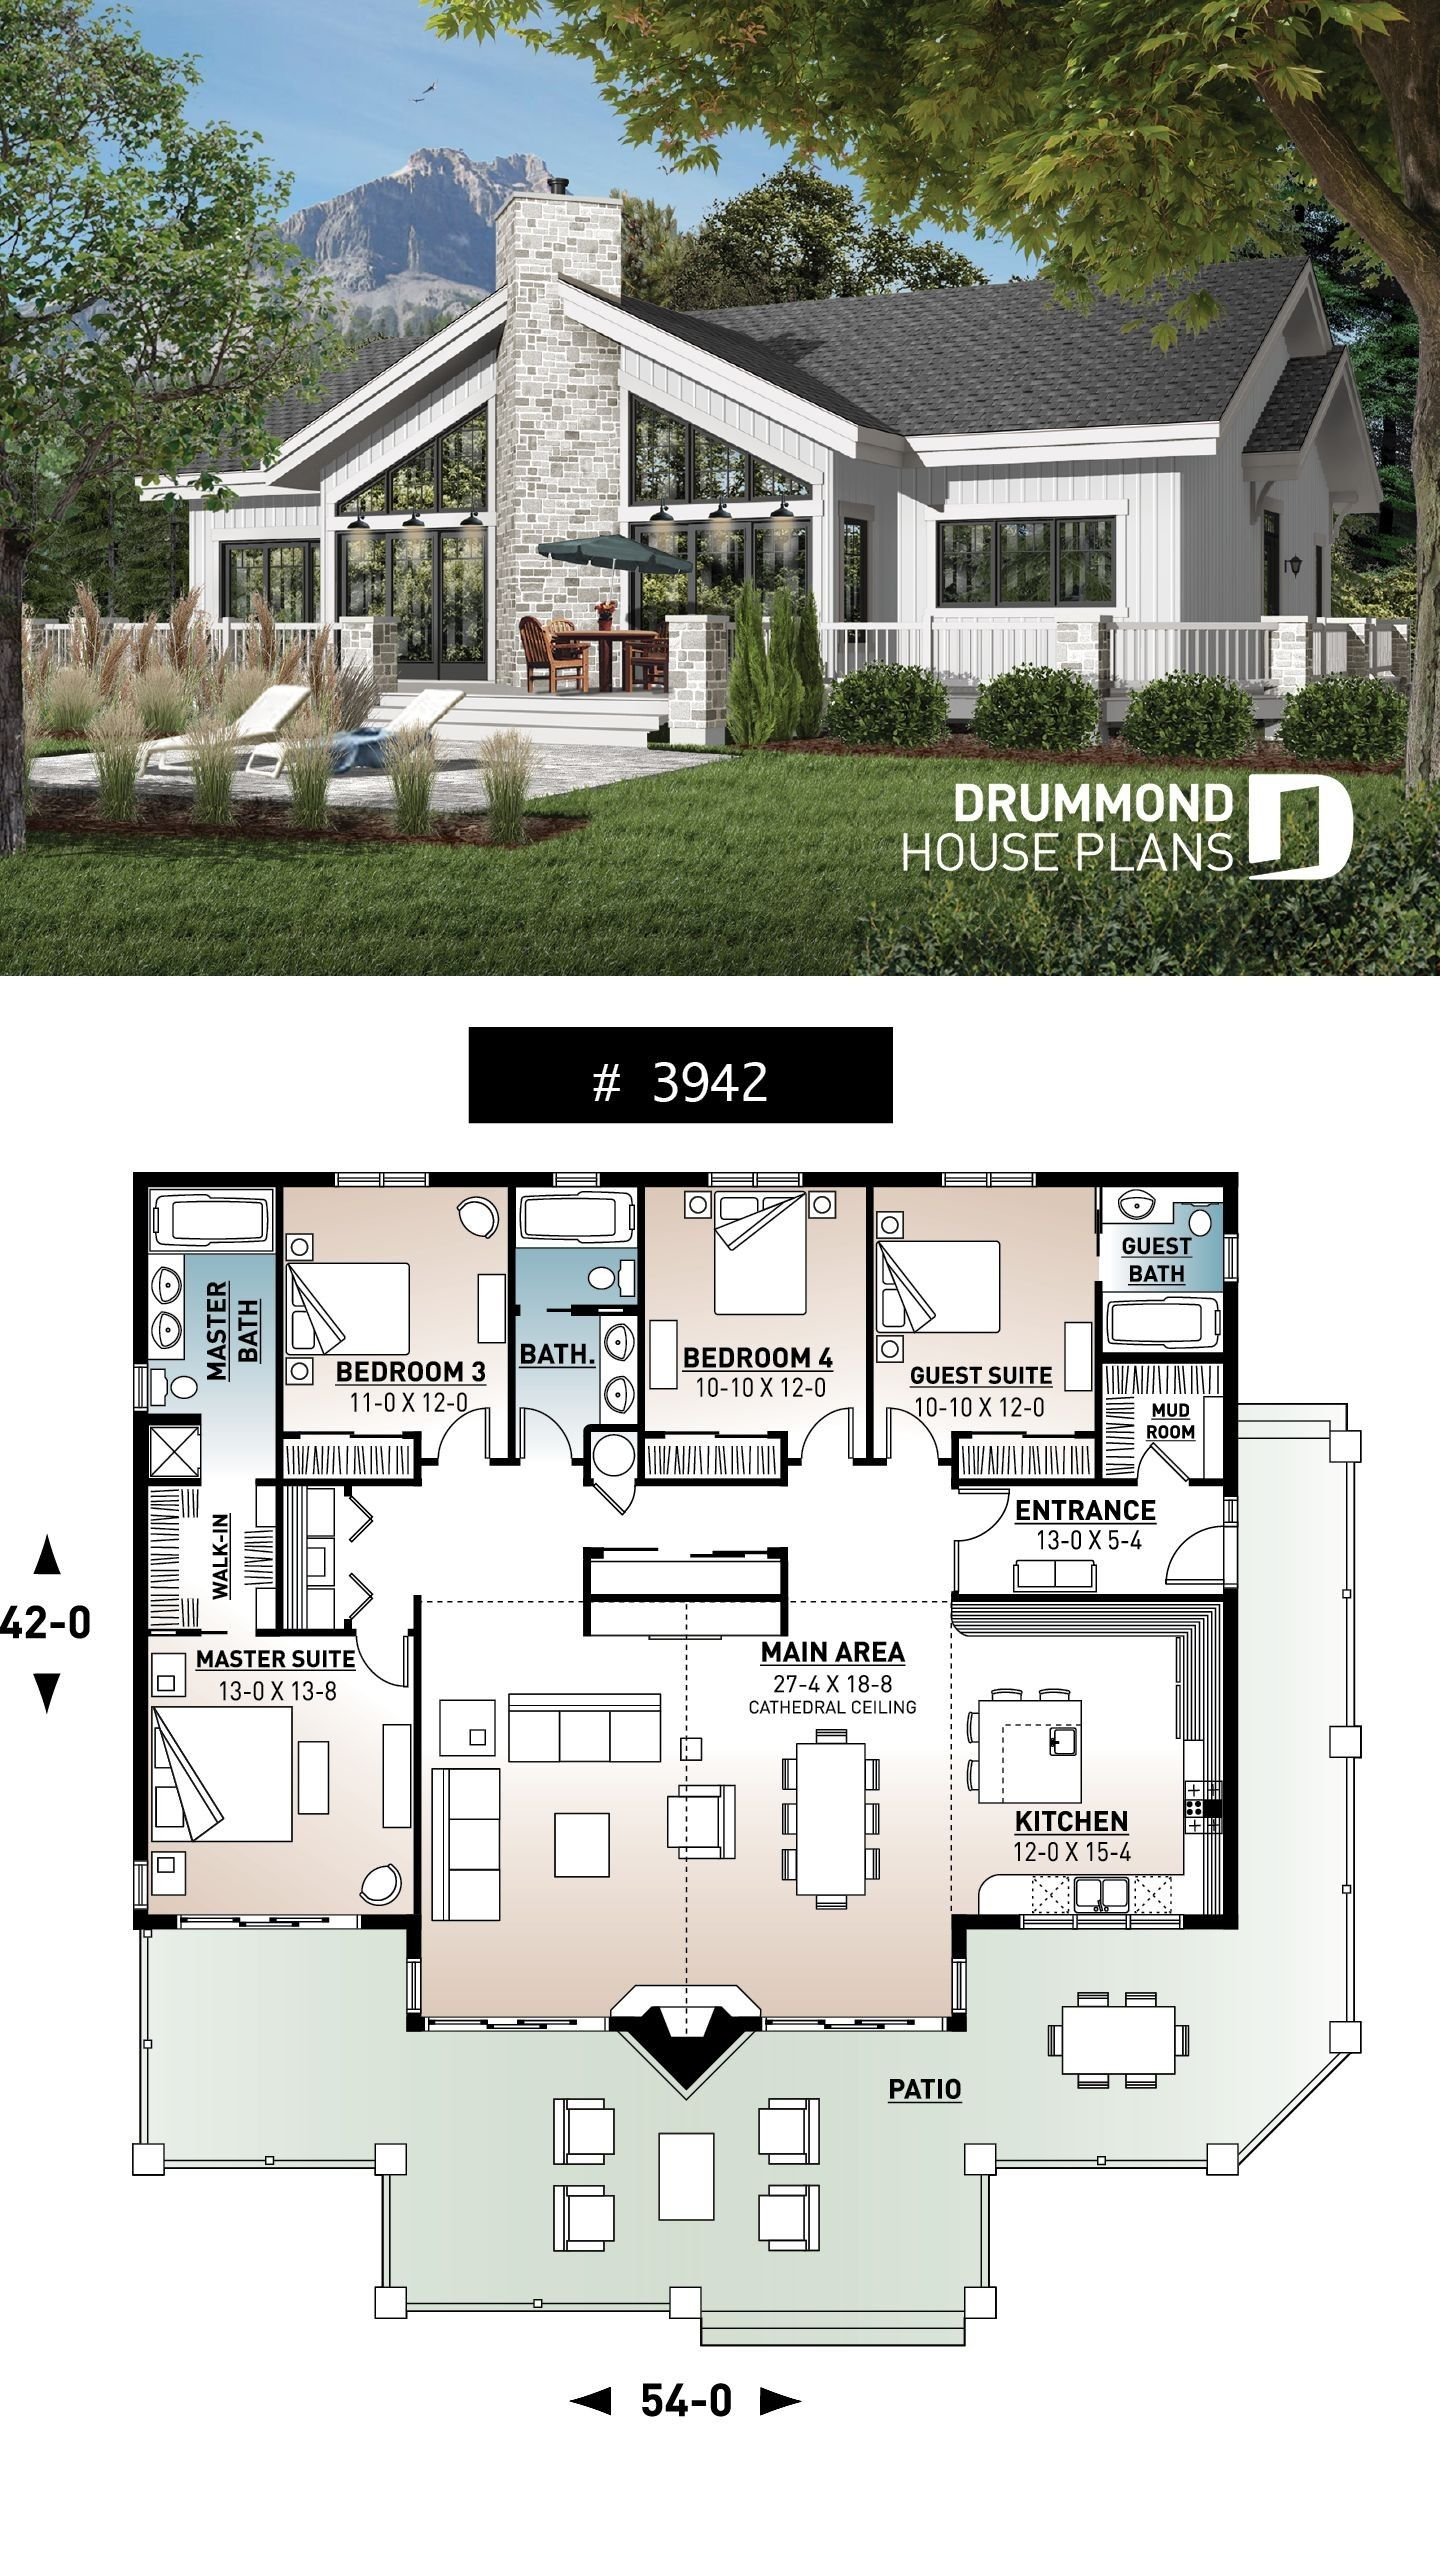 20 4 Bedroom House Designs Cathedral Ceiling 4 Bedrooms 3 Bathrooms 2 Master Suites Lake House Plans Sims House Plans House Plans Farmhouse